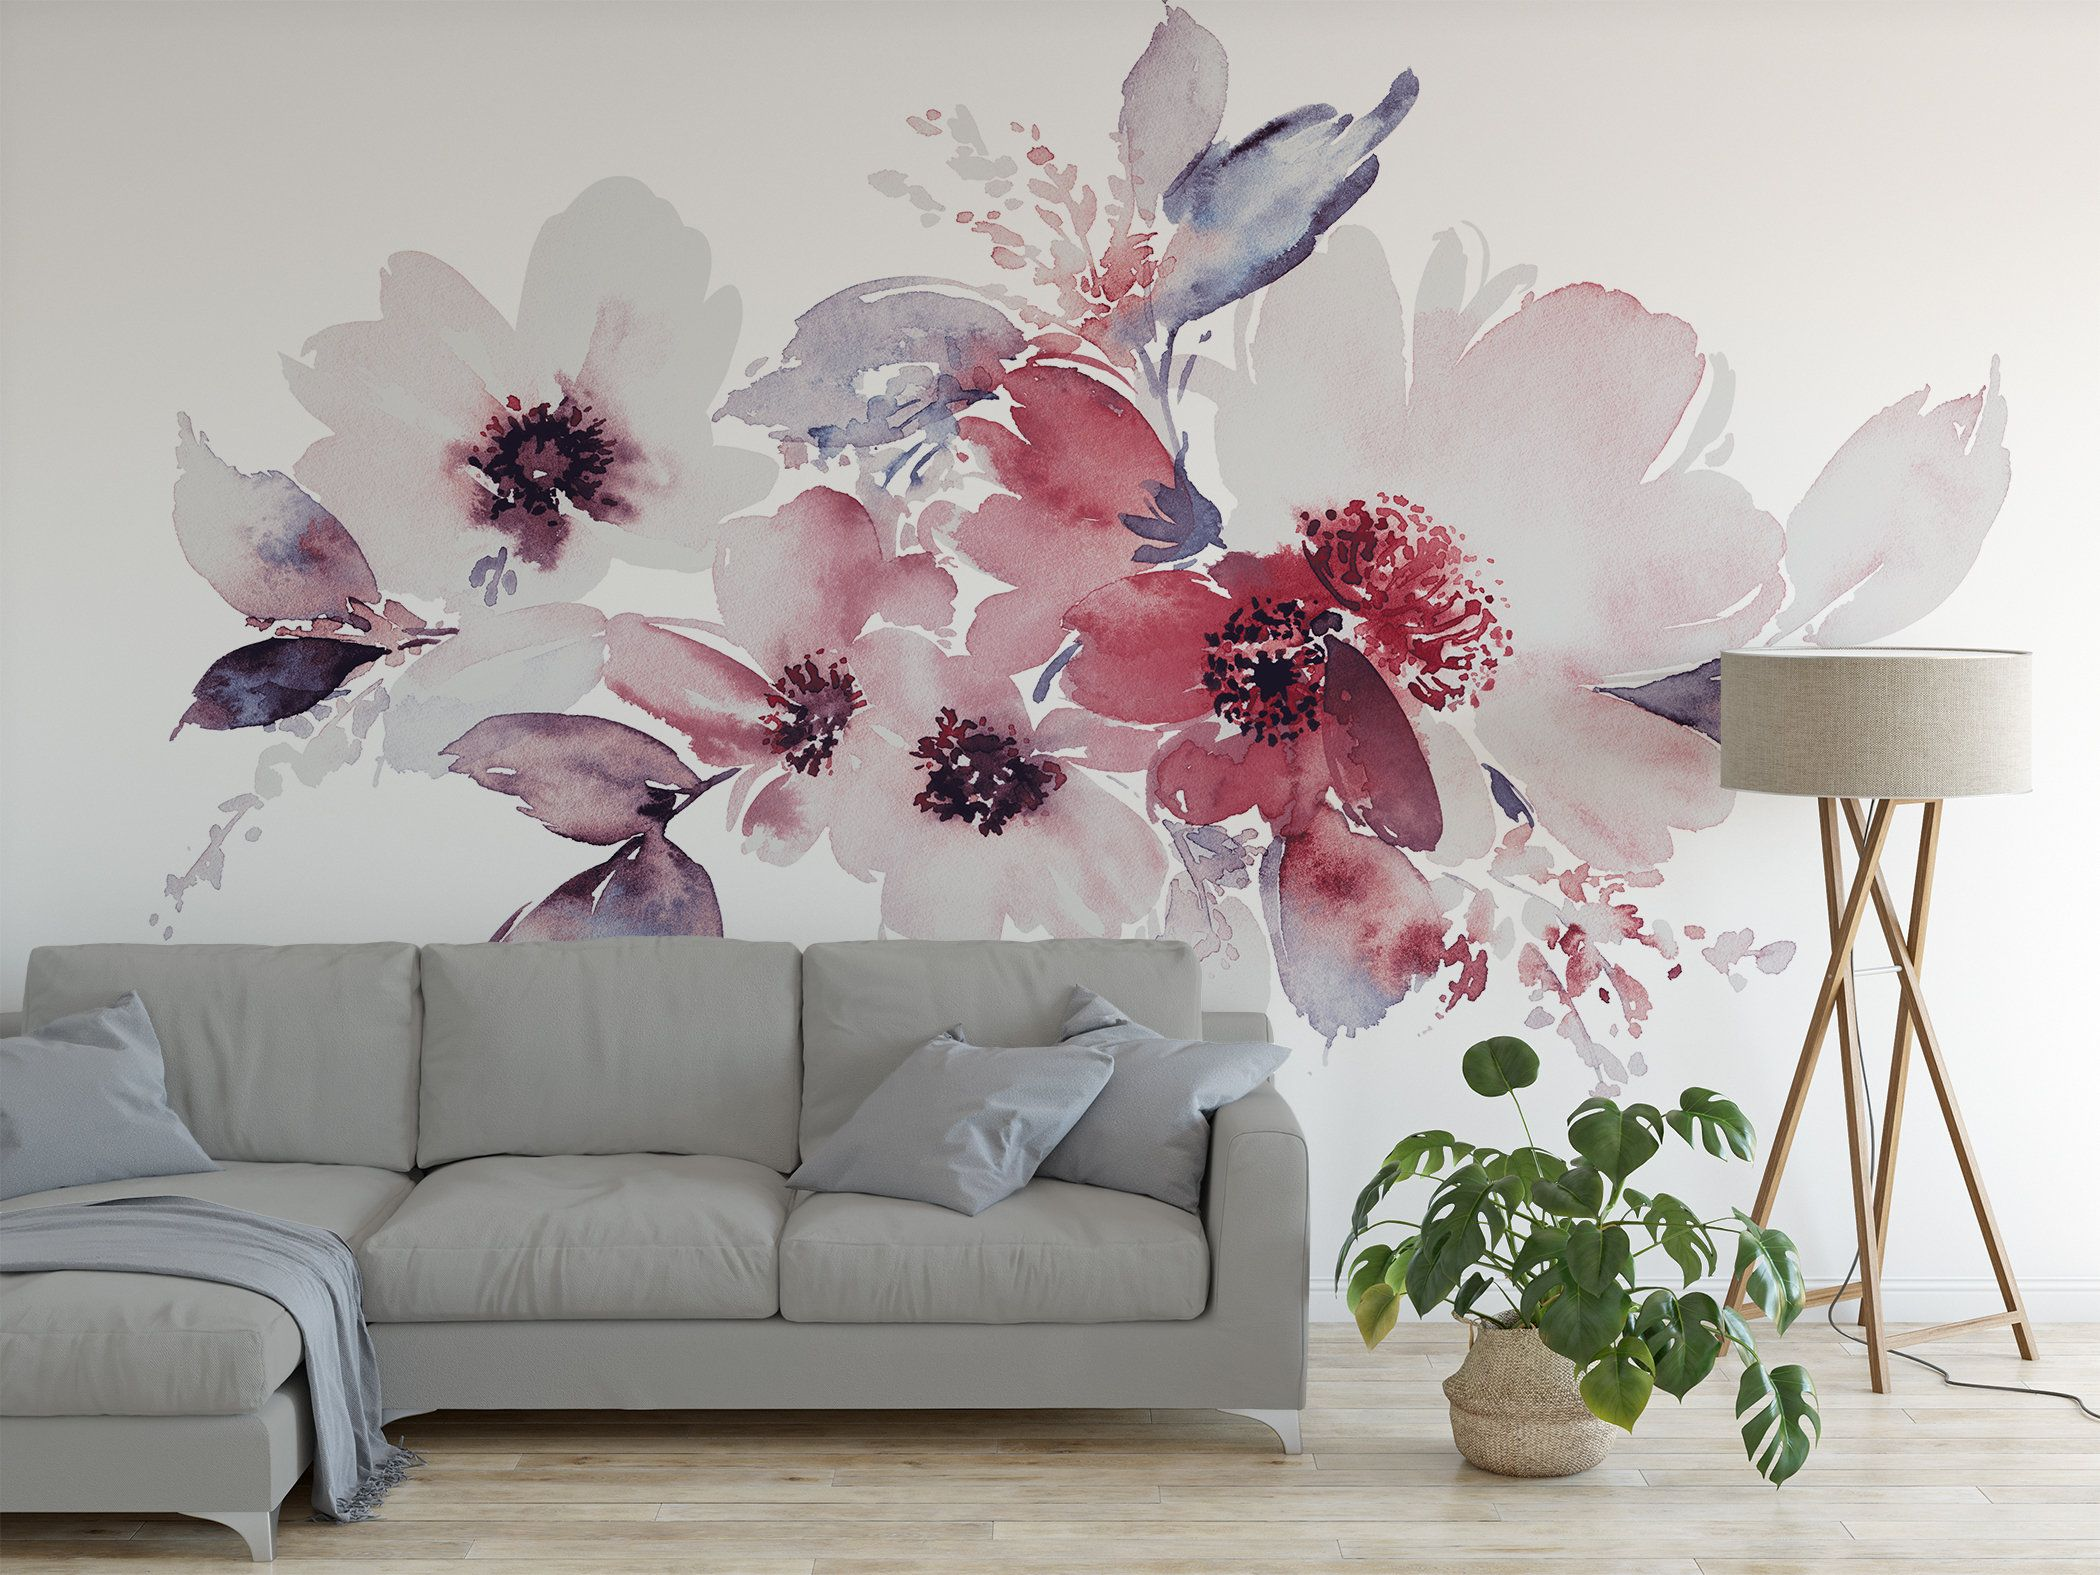 High Quality Peel And Stick Removable Self Adhesive Wallpaper Etsy Flower Mural Nursery Mural Decal Wall Art